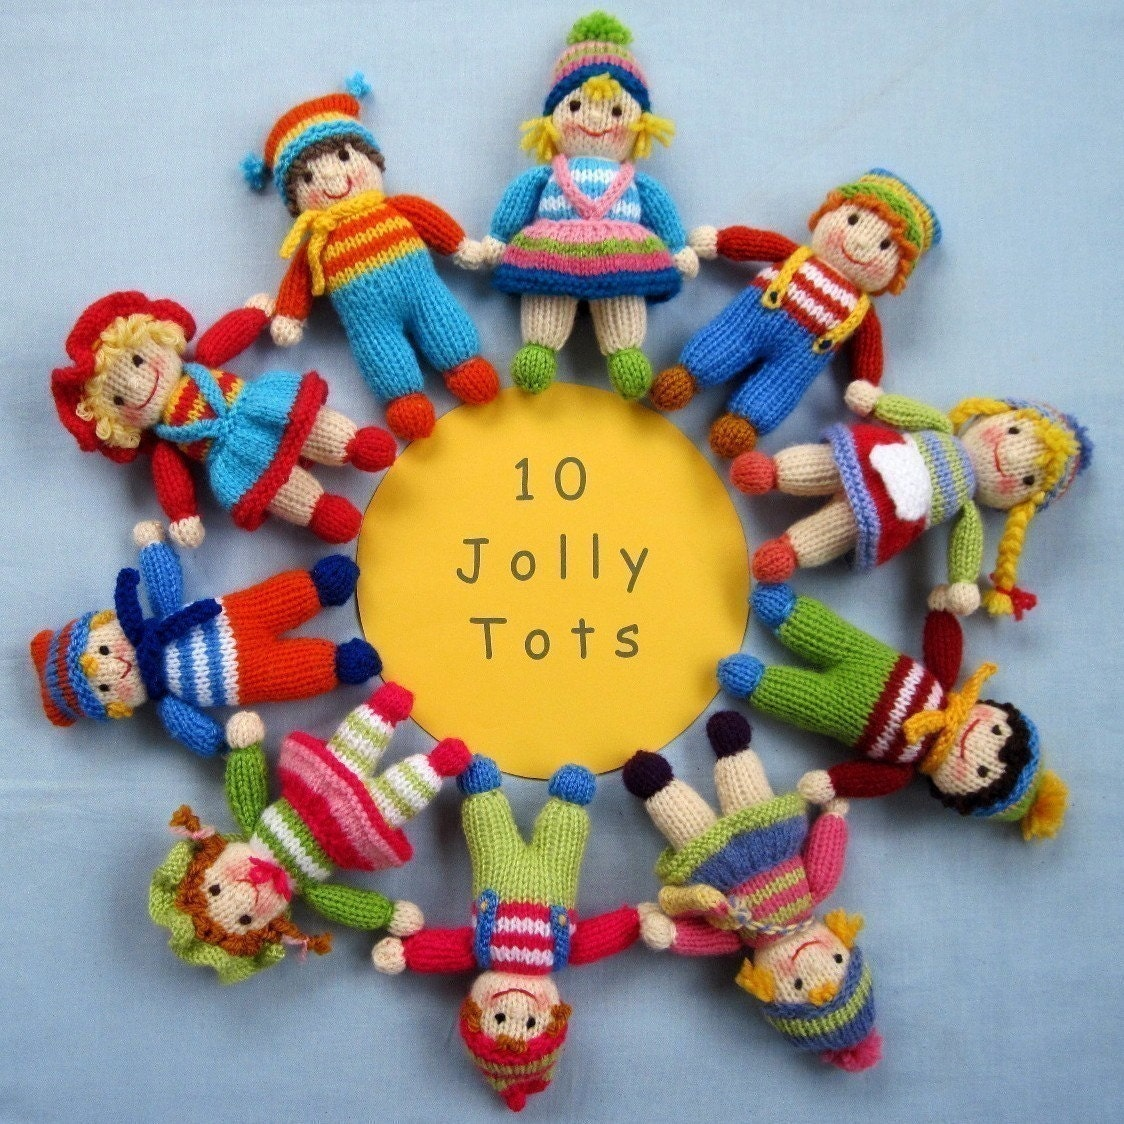 JOLLY TOTS - toy dolls - PDF email knitting pattern